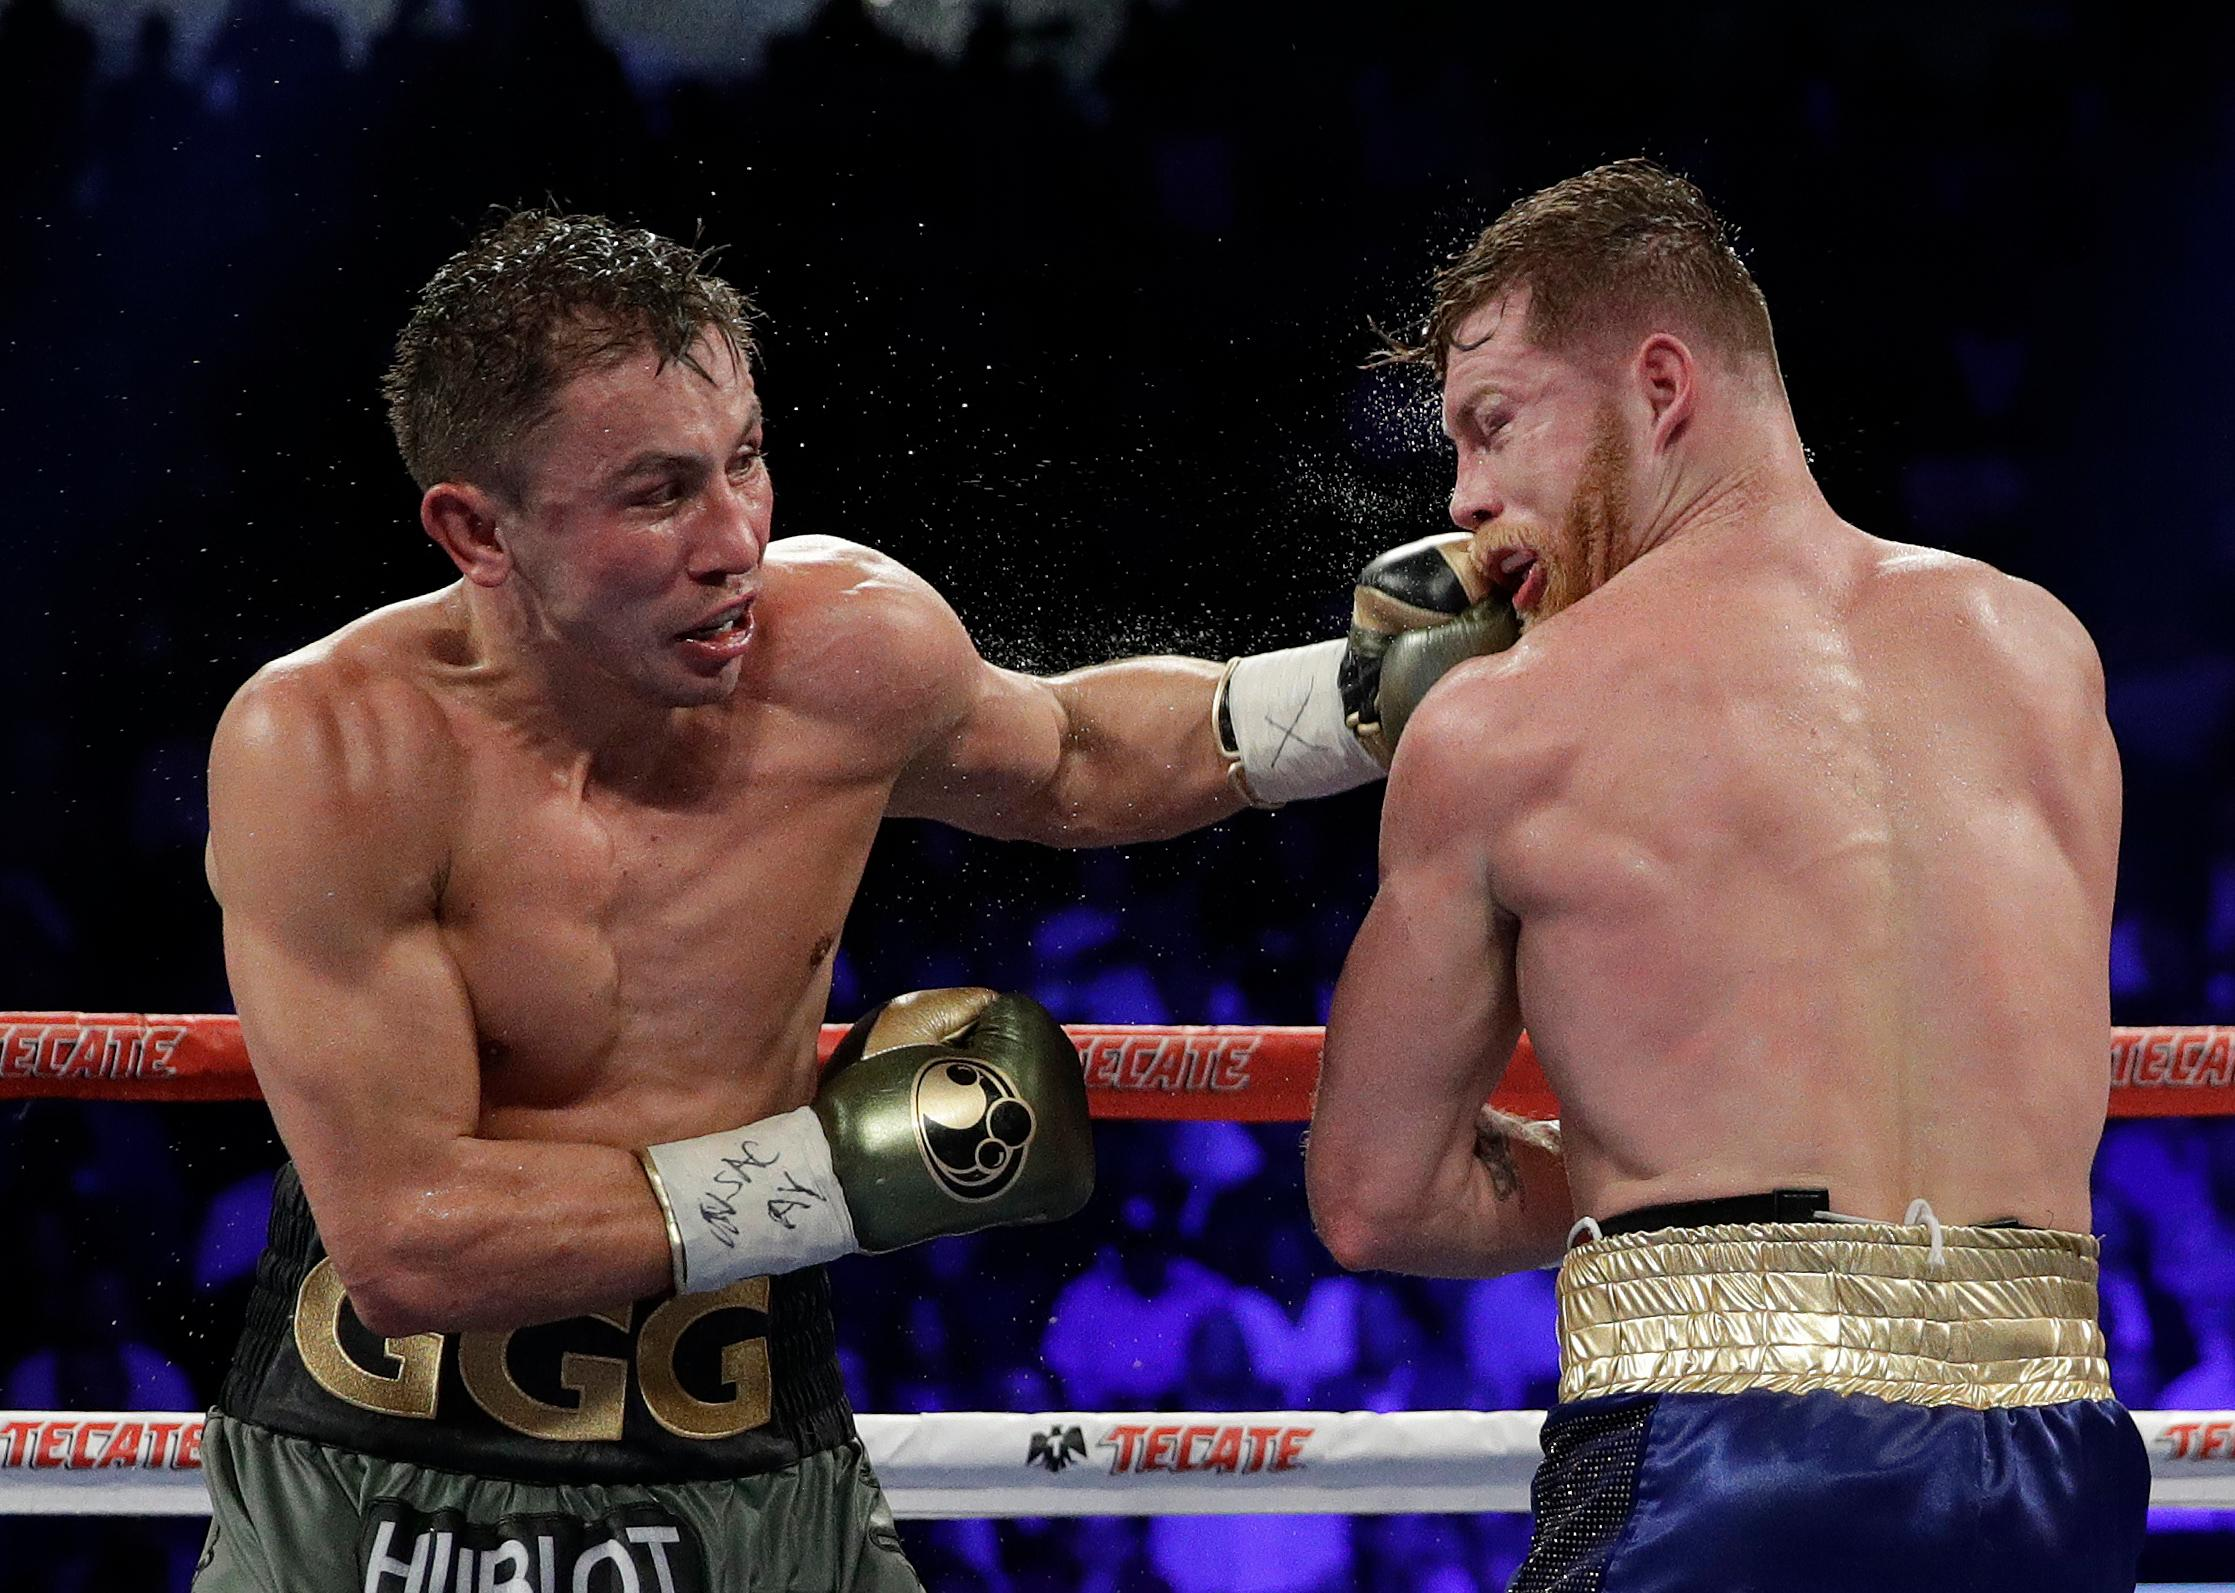 The anticipated rematch between Canelo and Golovkin this September has been cancelled